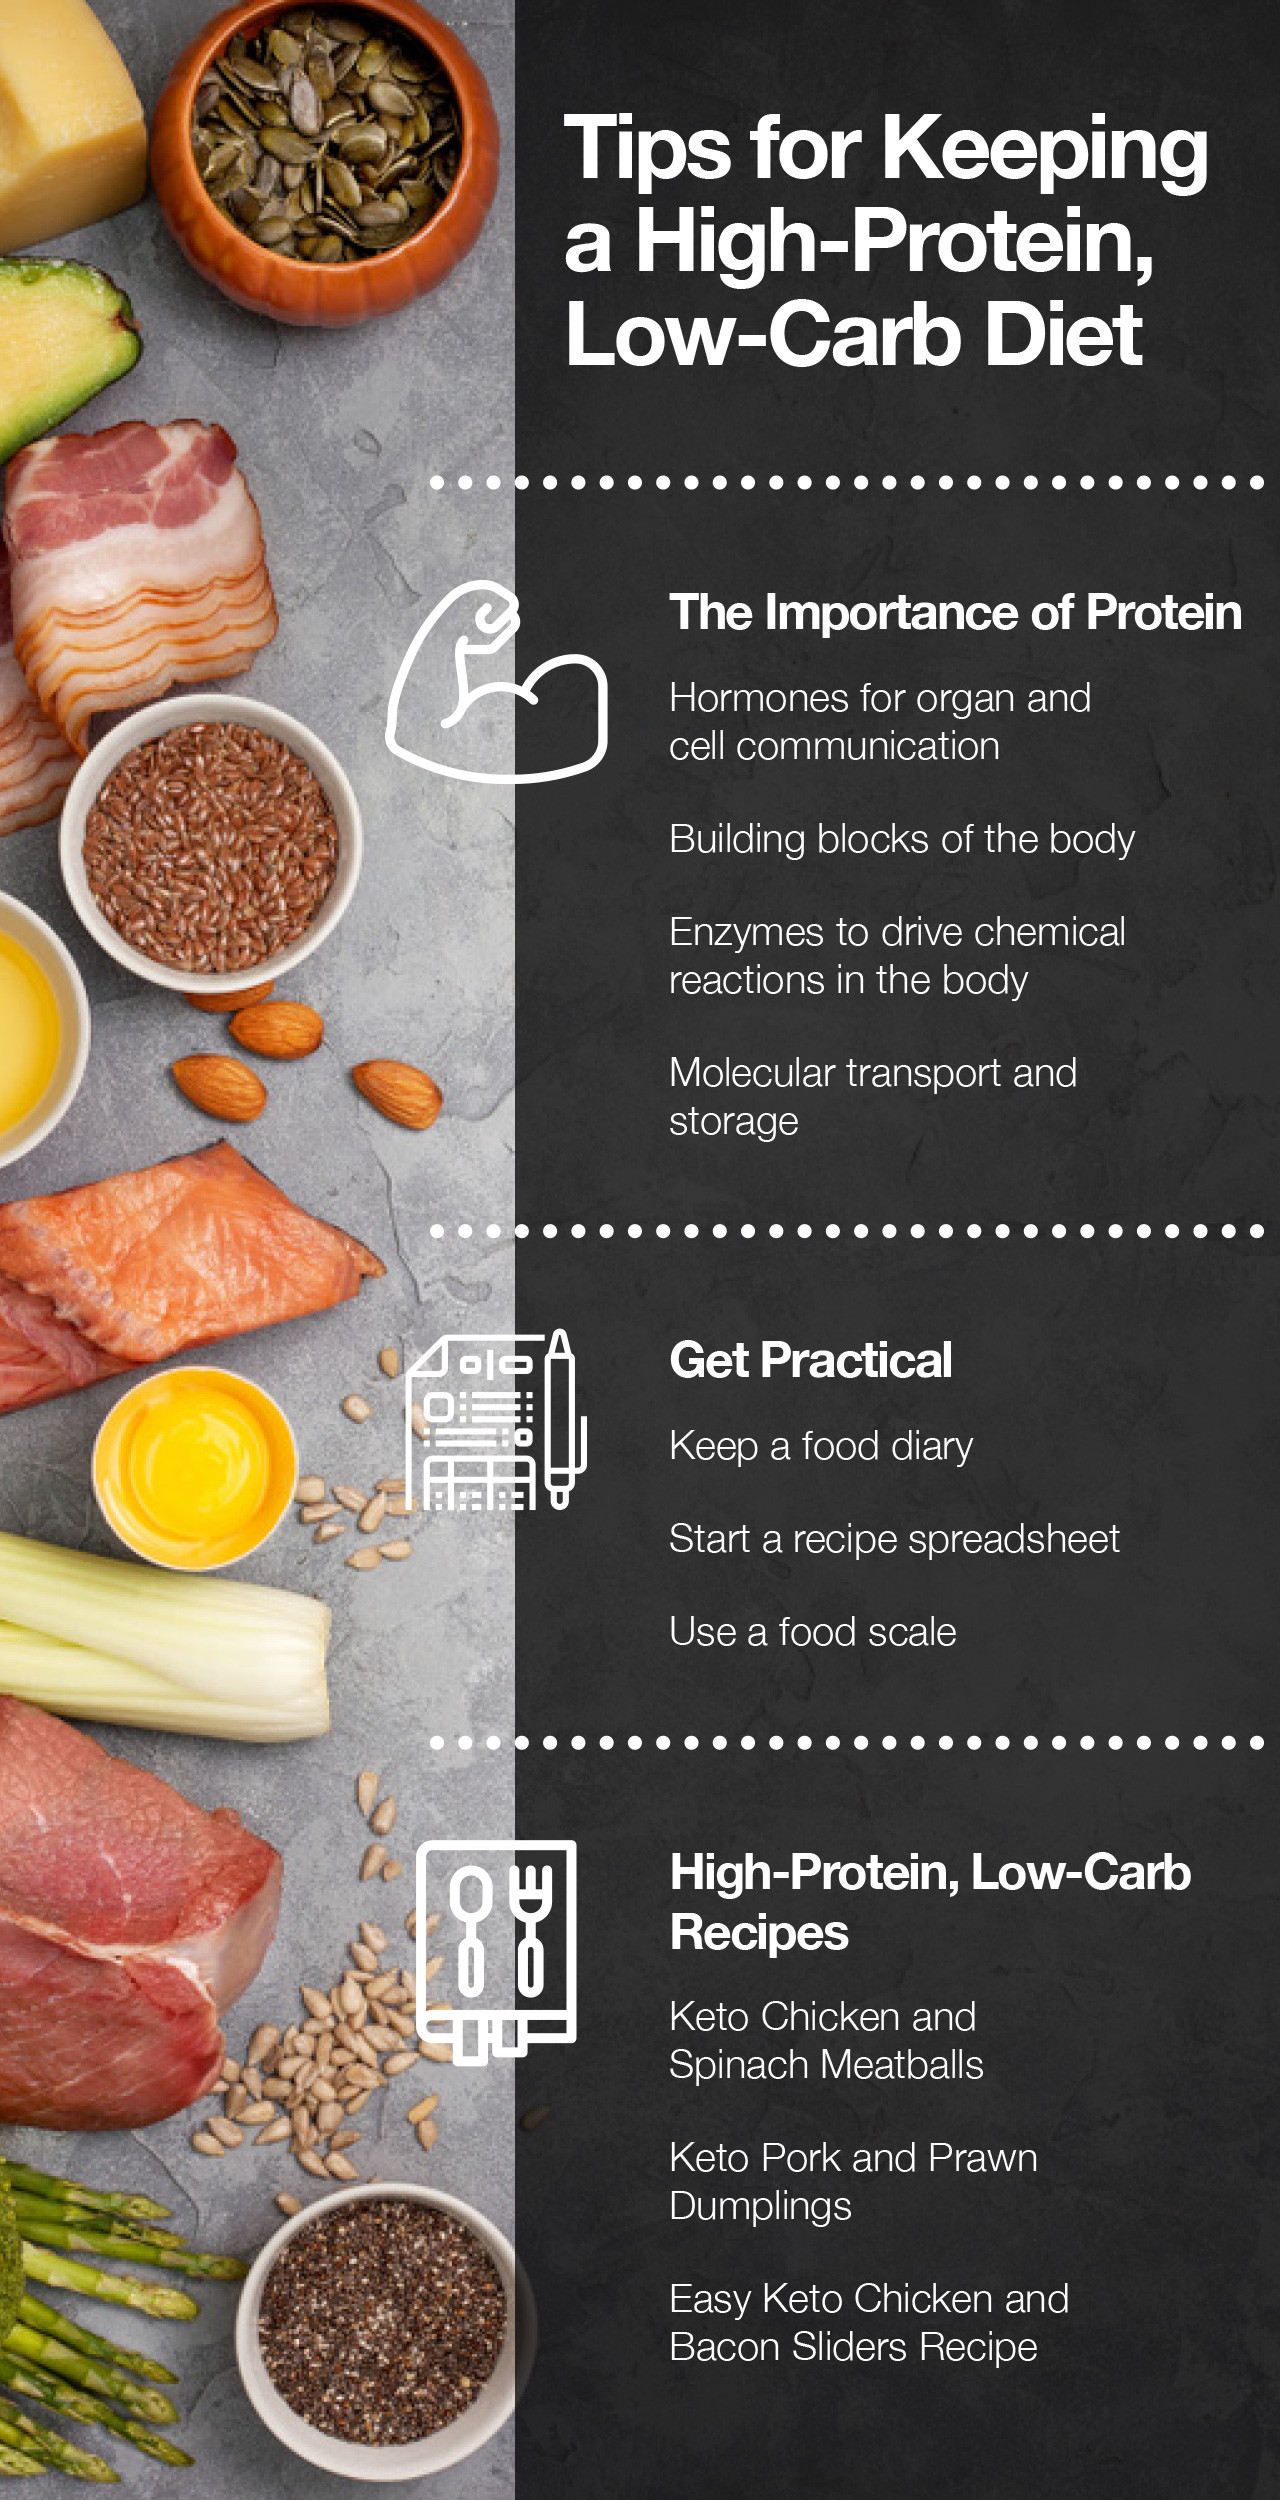 High Protein Low Carb Low Fat Diet  Tips for Keeping a High Protein Low Carb Diet Fitoru